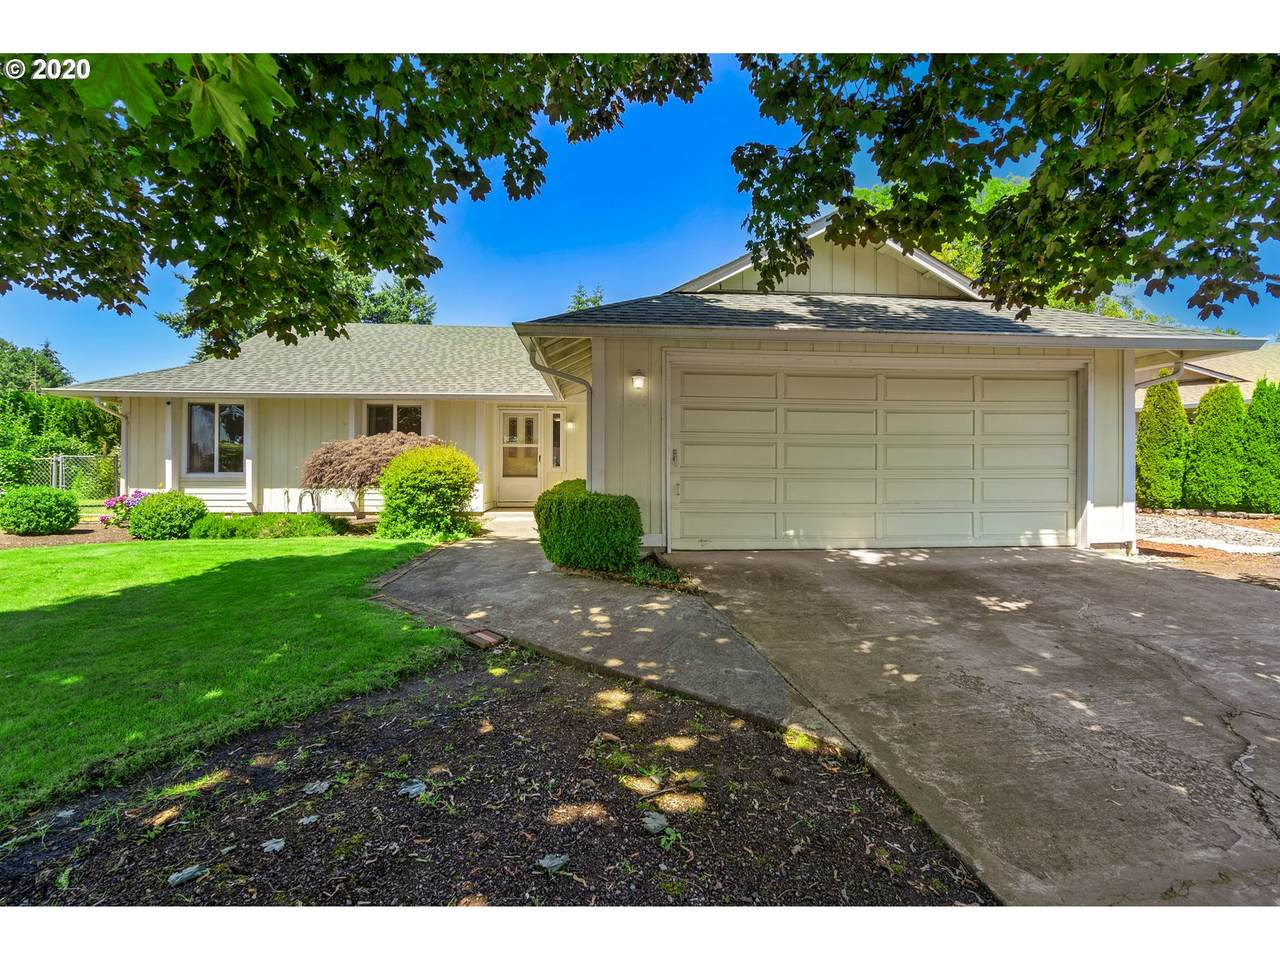 1610 Olympia Dr - Photo 1